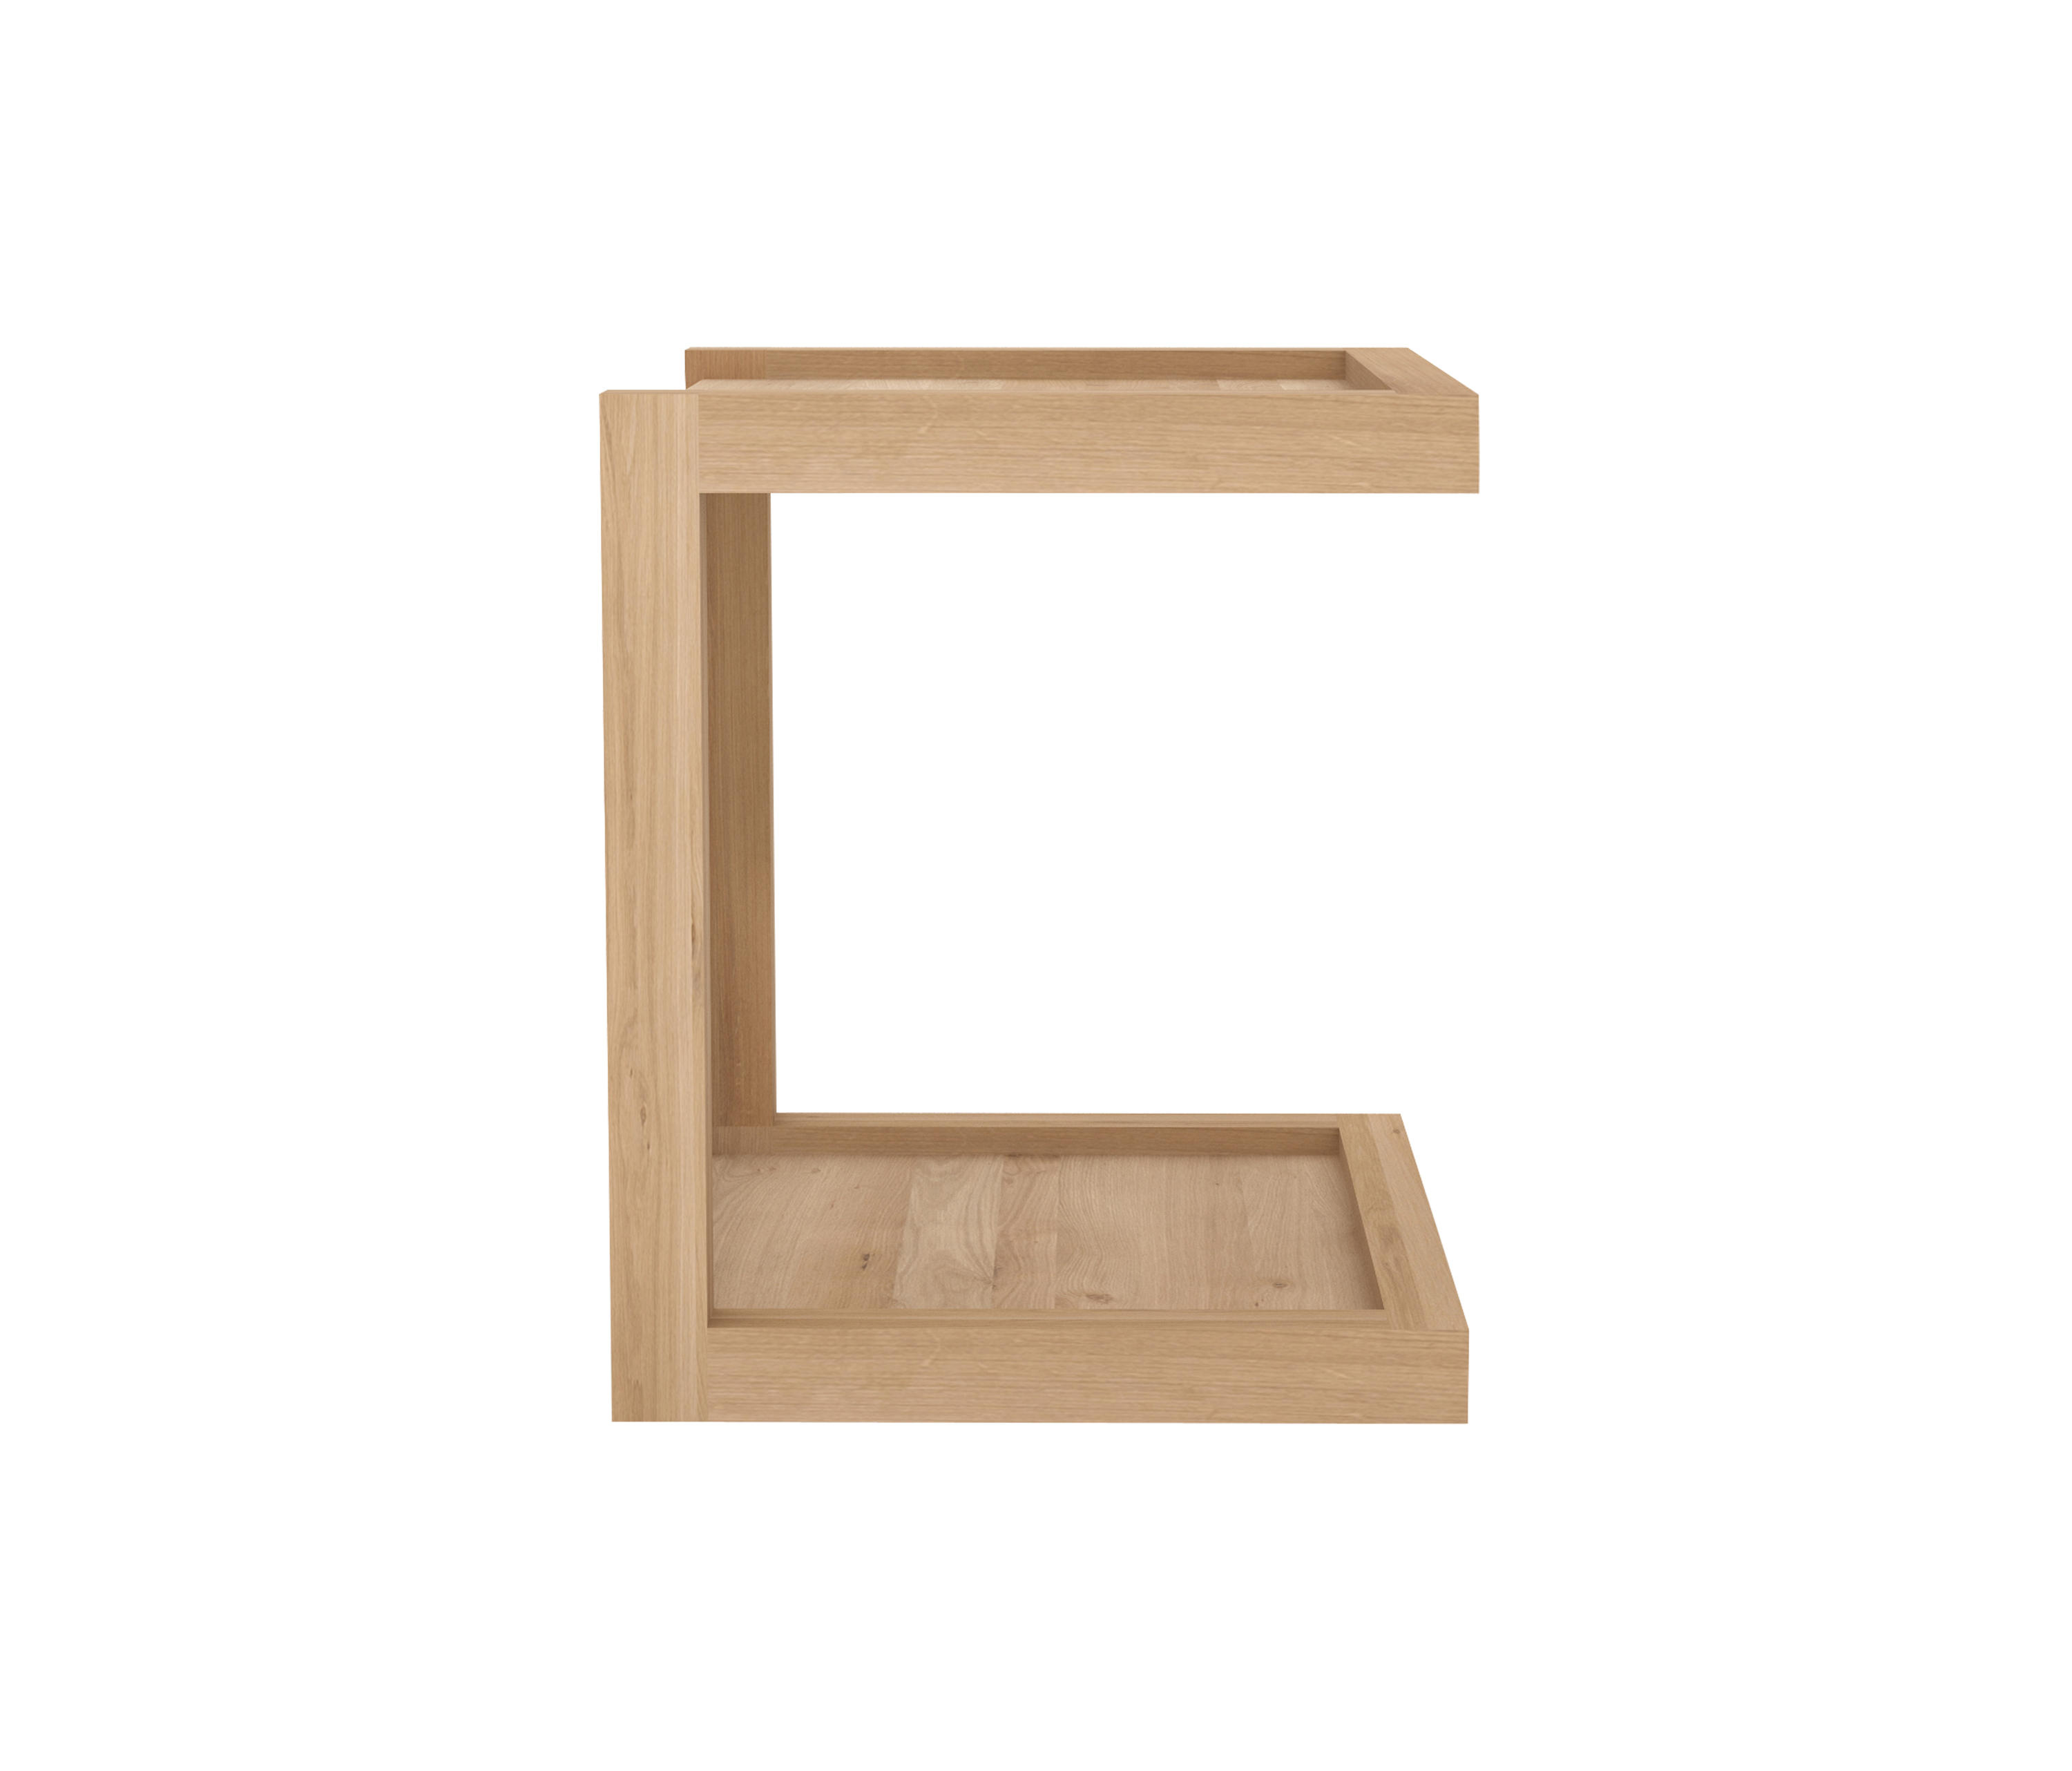 Oak Frame Sofa Side Table By Ethnicraft | Side Tables ...